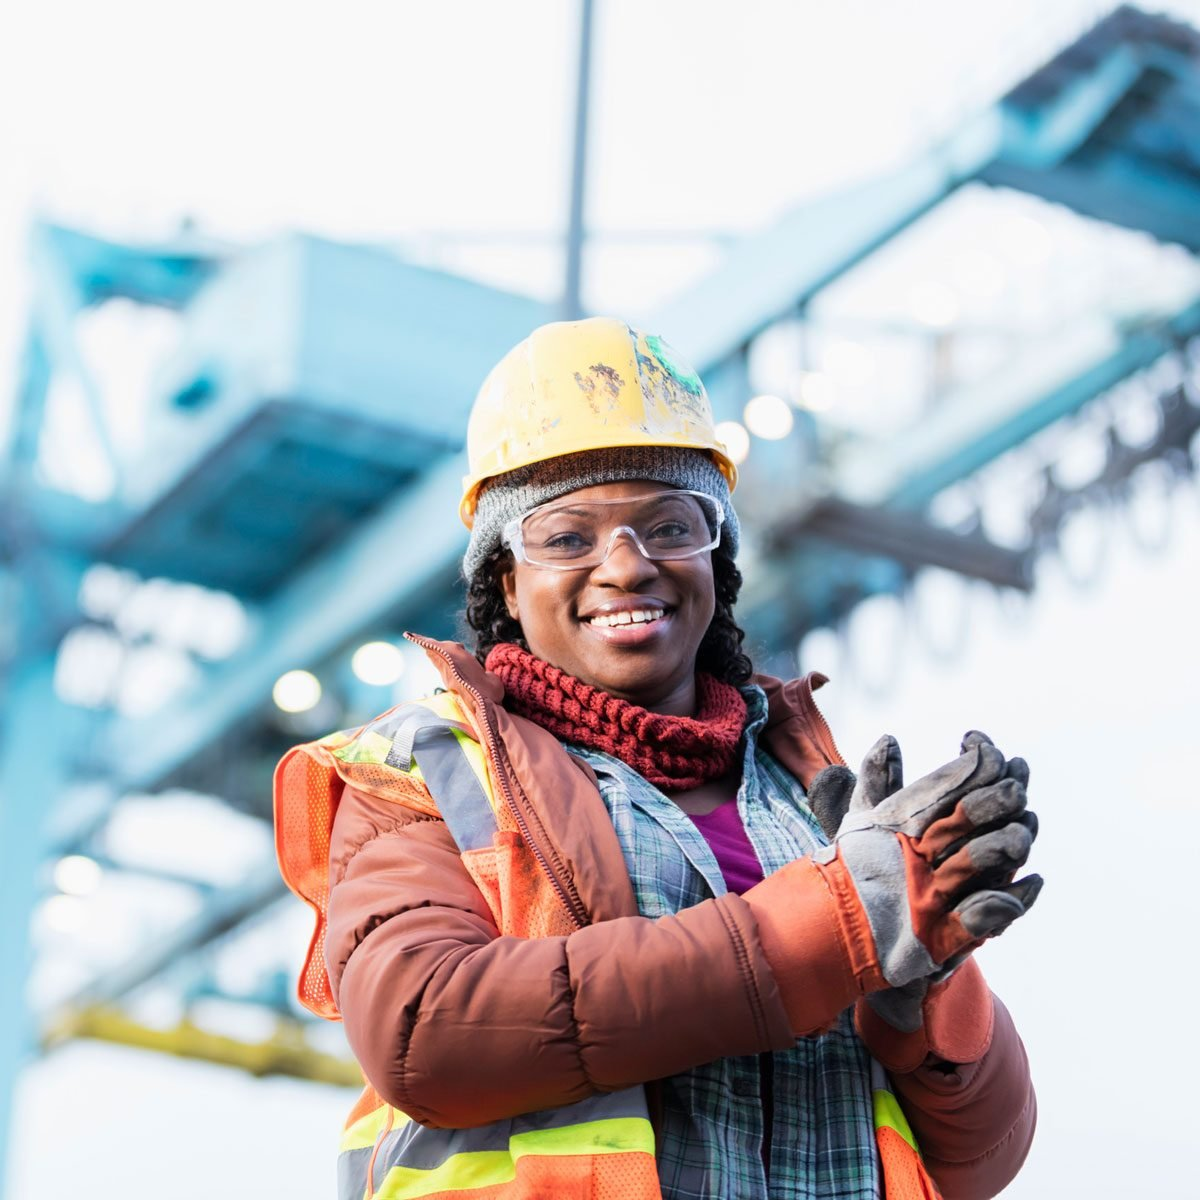 Why More Women Are Considering Careers in the Trades